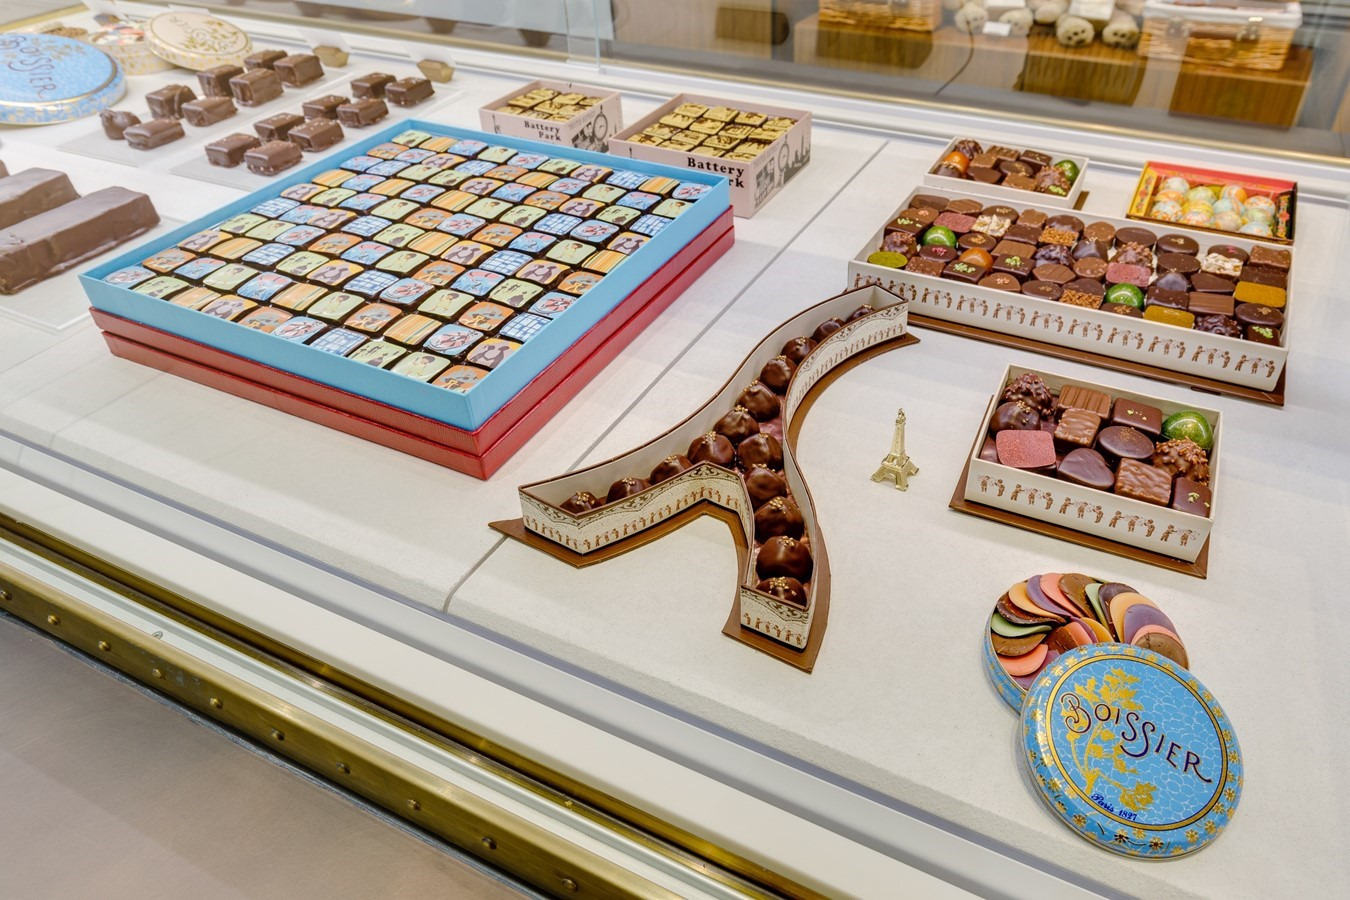 Salon Du Chocolat Nantes Boutique Le Chocolat Artisan Chocolatier Now Open On Citywalk